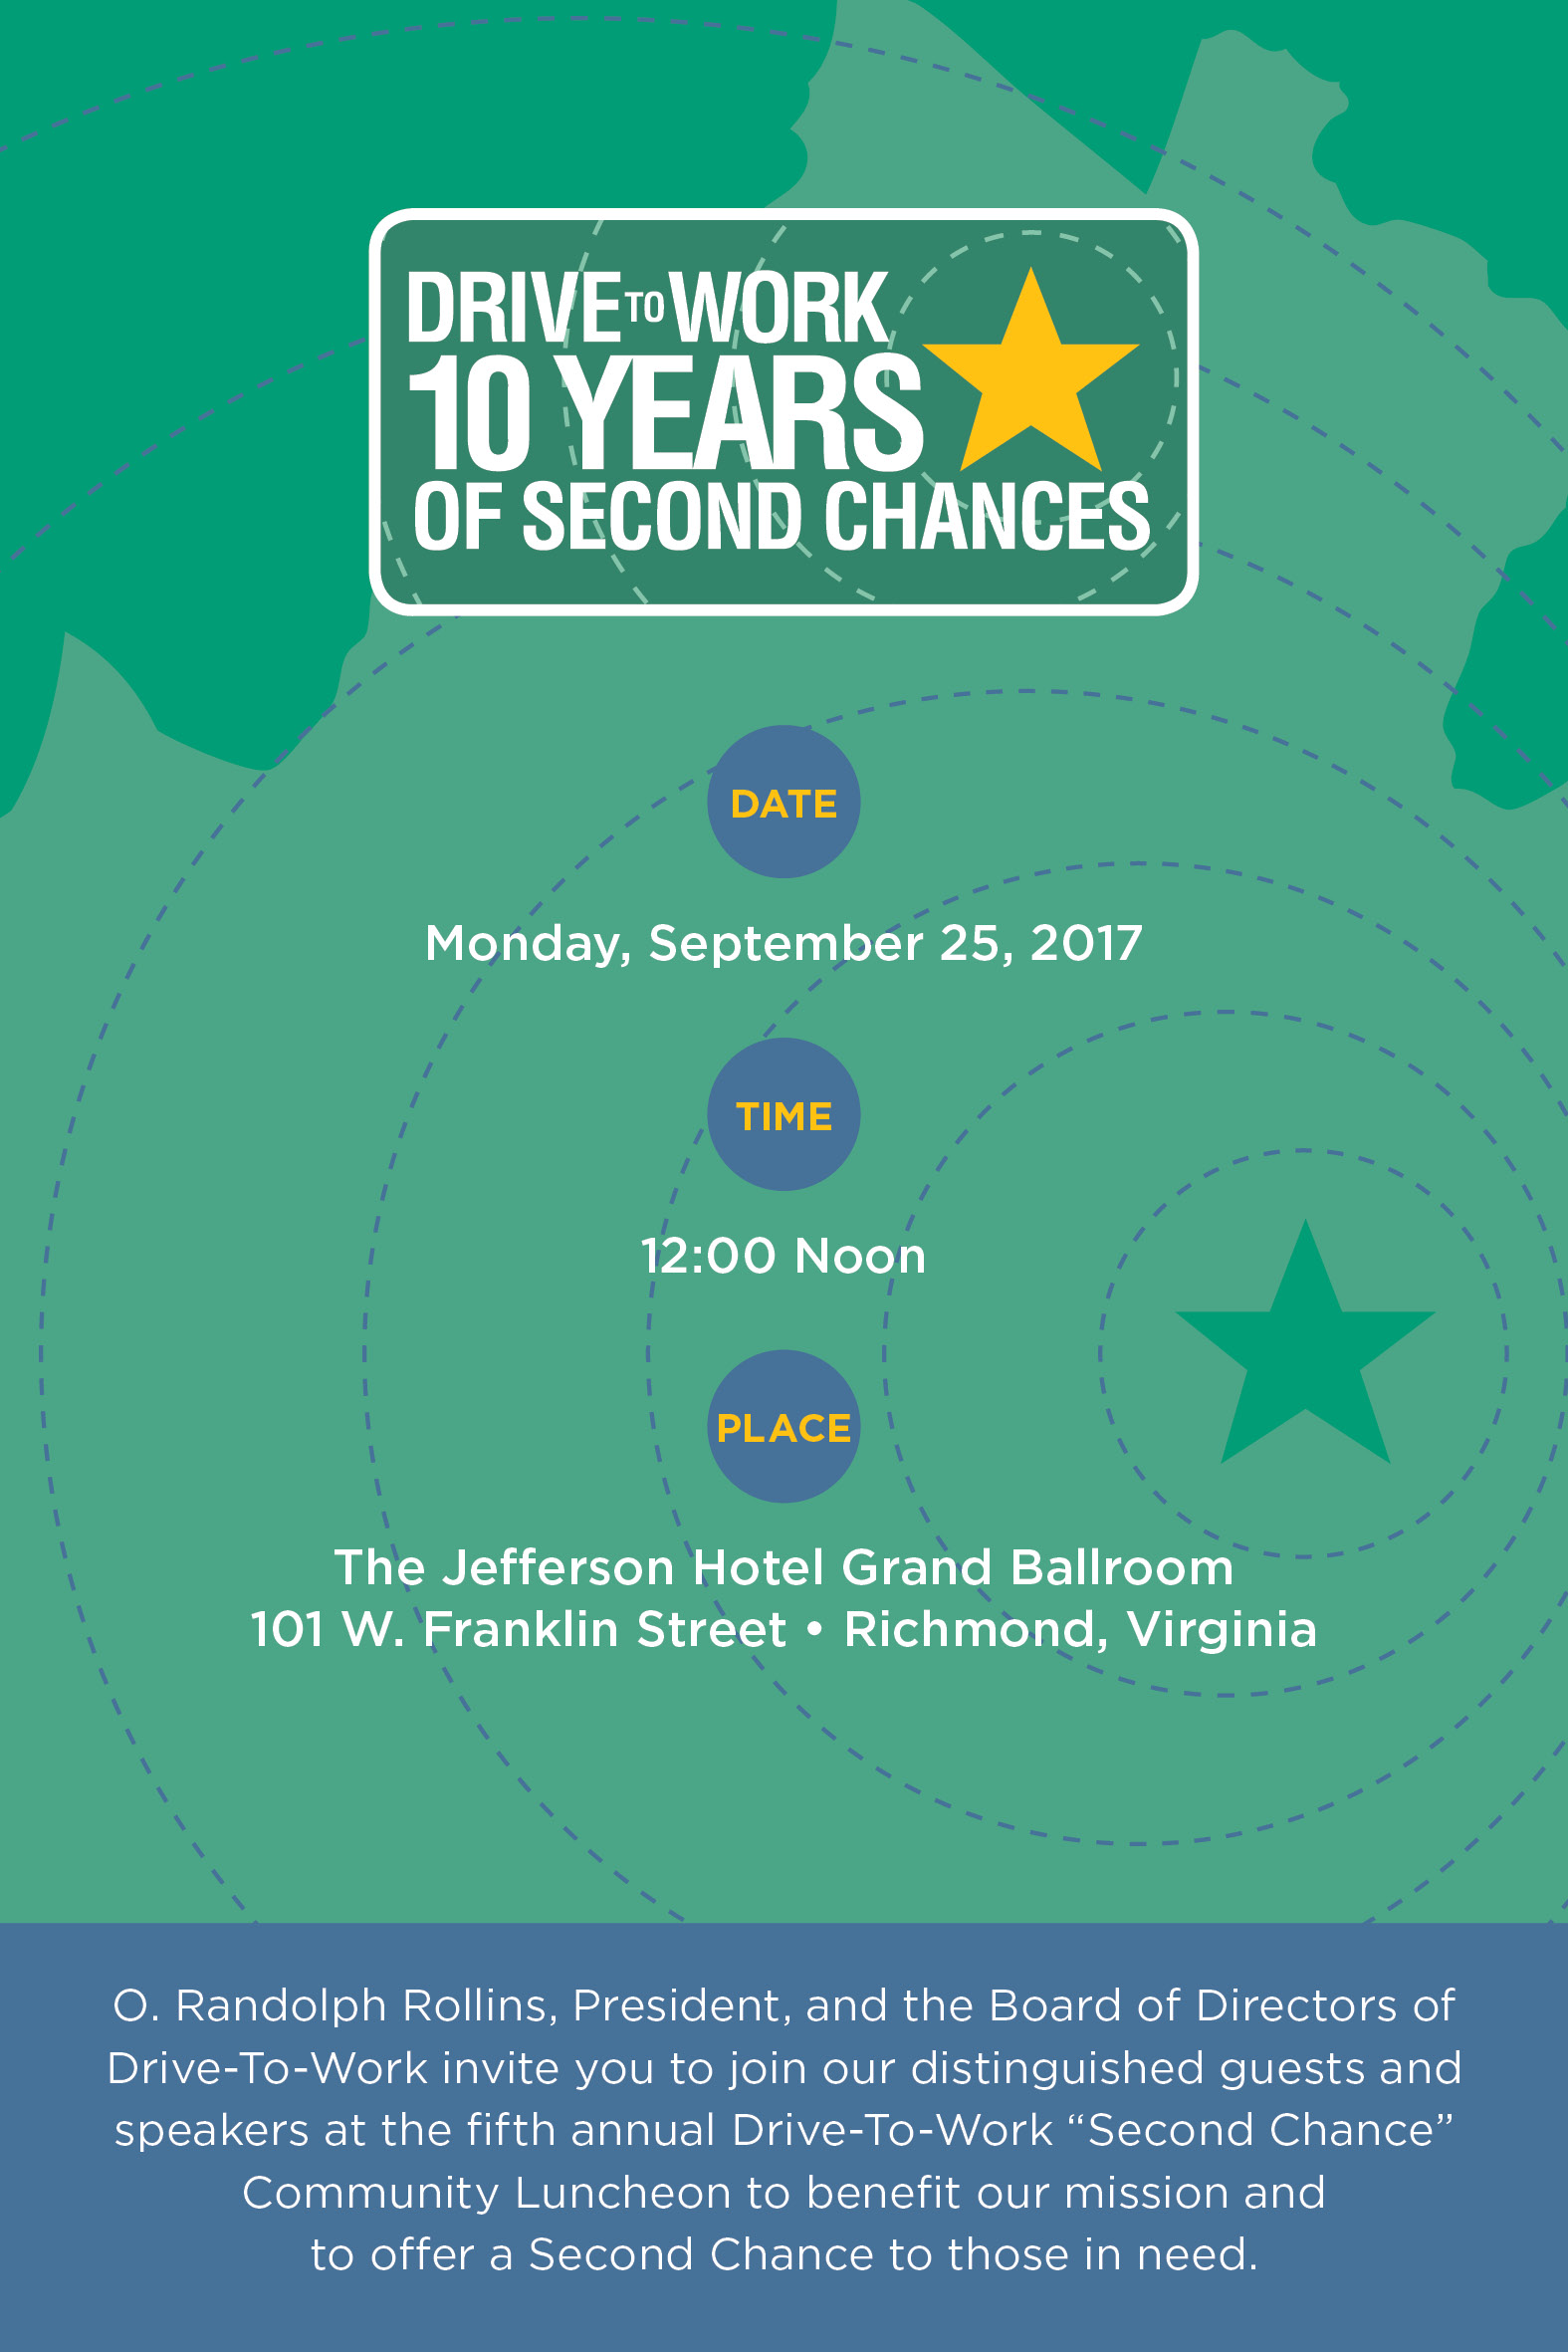 Pool 2017 Second Chance Community Luncheon Will Be On At Jefferson Hotel 2017 Second Chance Community Luncheon Second Chance Offer On Ebay Mobile App Second Chance Offer Manheim dpreview Second Chance Offer